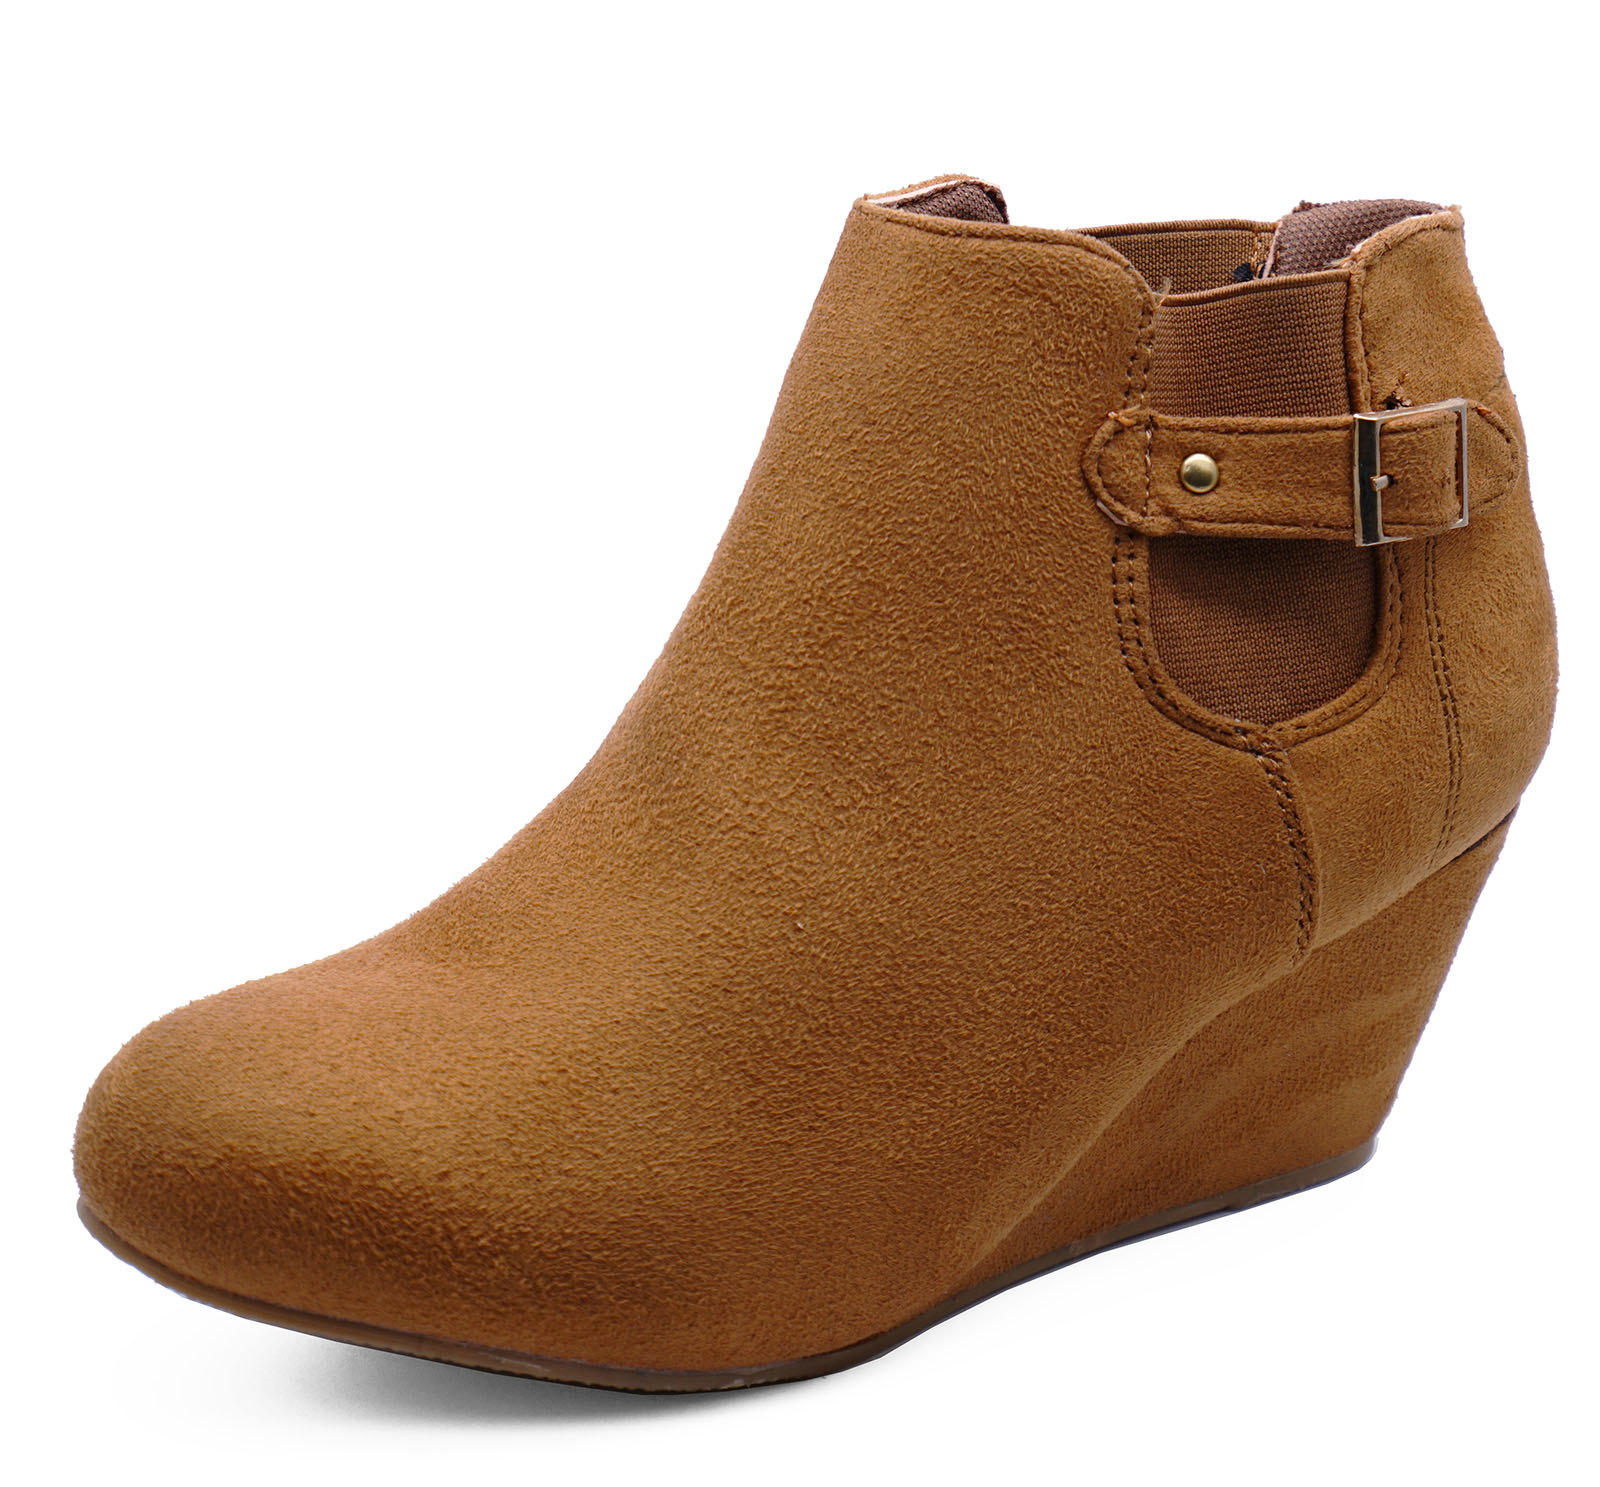 2ebcffcbcc4c4 Sentinel WOMENS TAN BROWN LOW-WEDGE SMART CASUAL WORK ANKLE PIXIE BOOTS  SHOES UK 3-